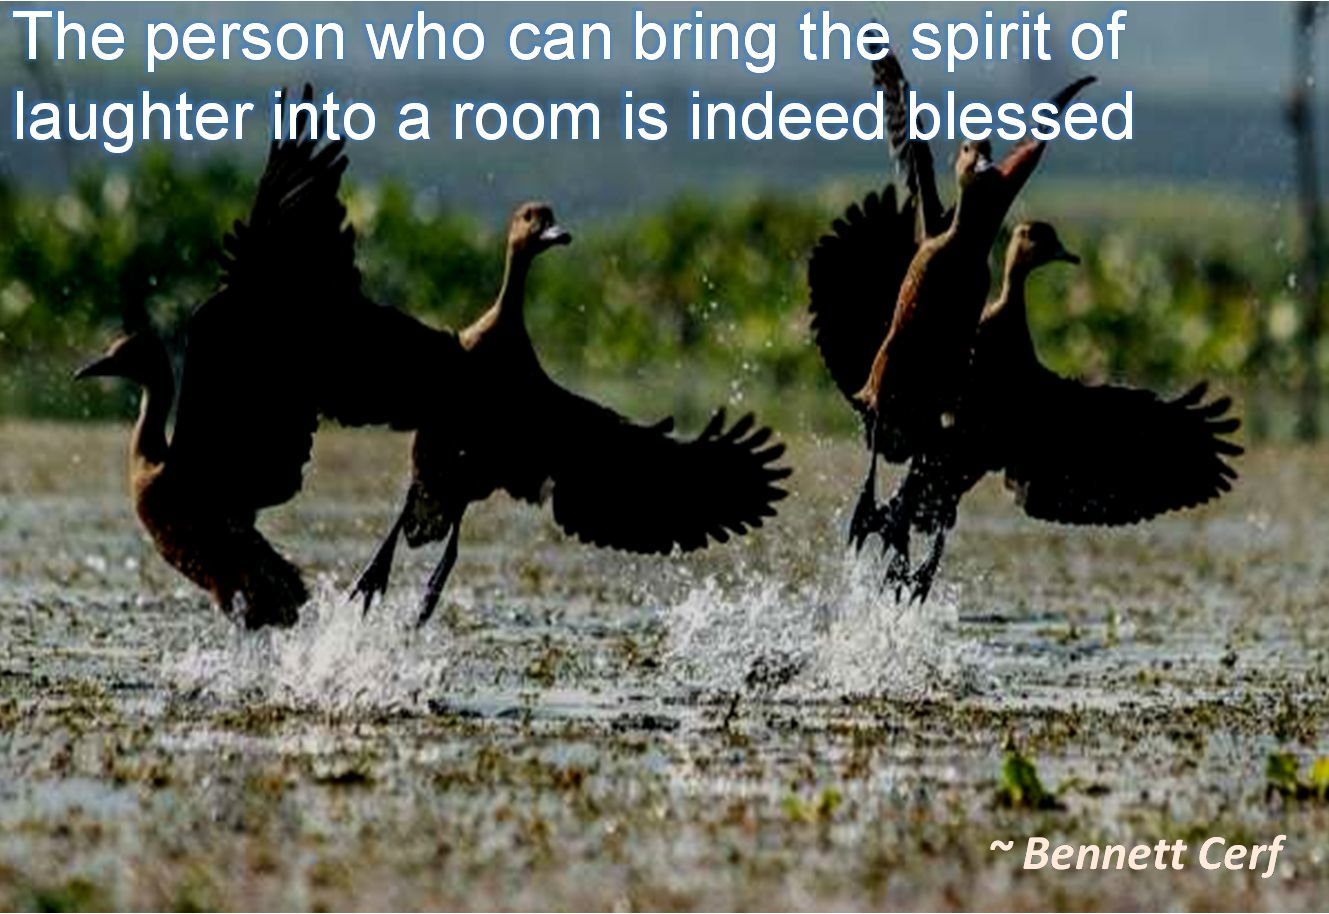 Bennett Cerf- The person who can bring the spirit of laughter into a room is indeed blessed